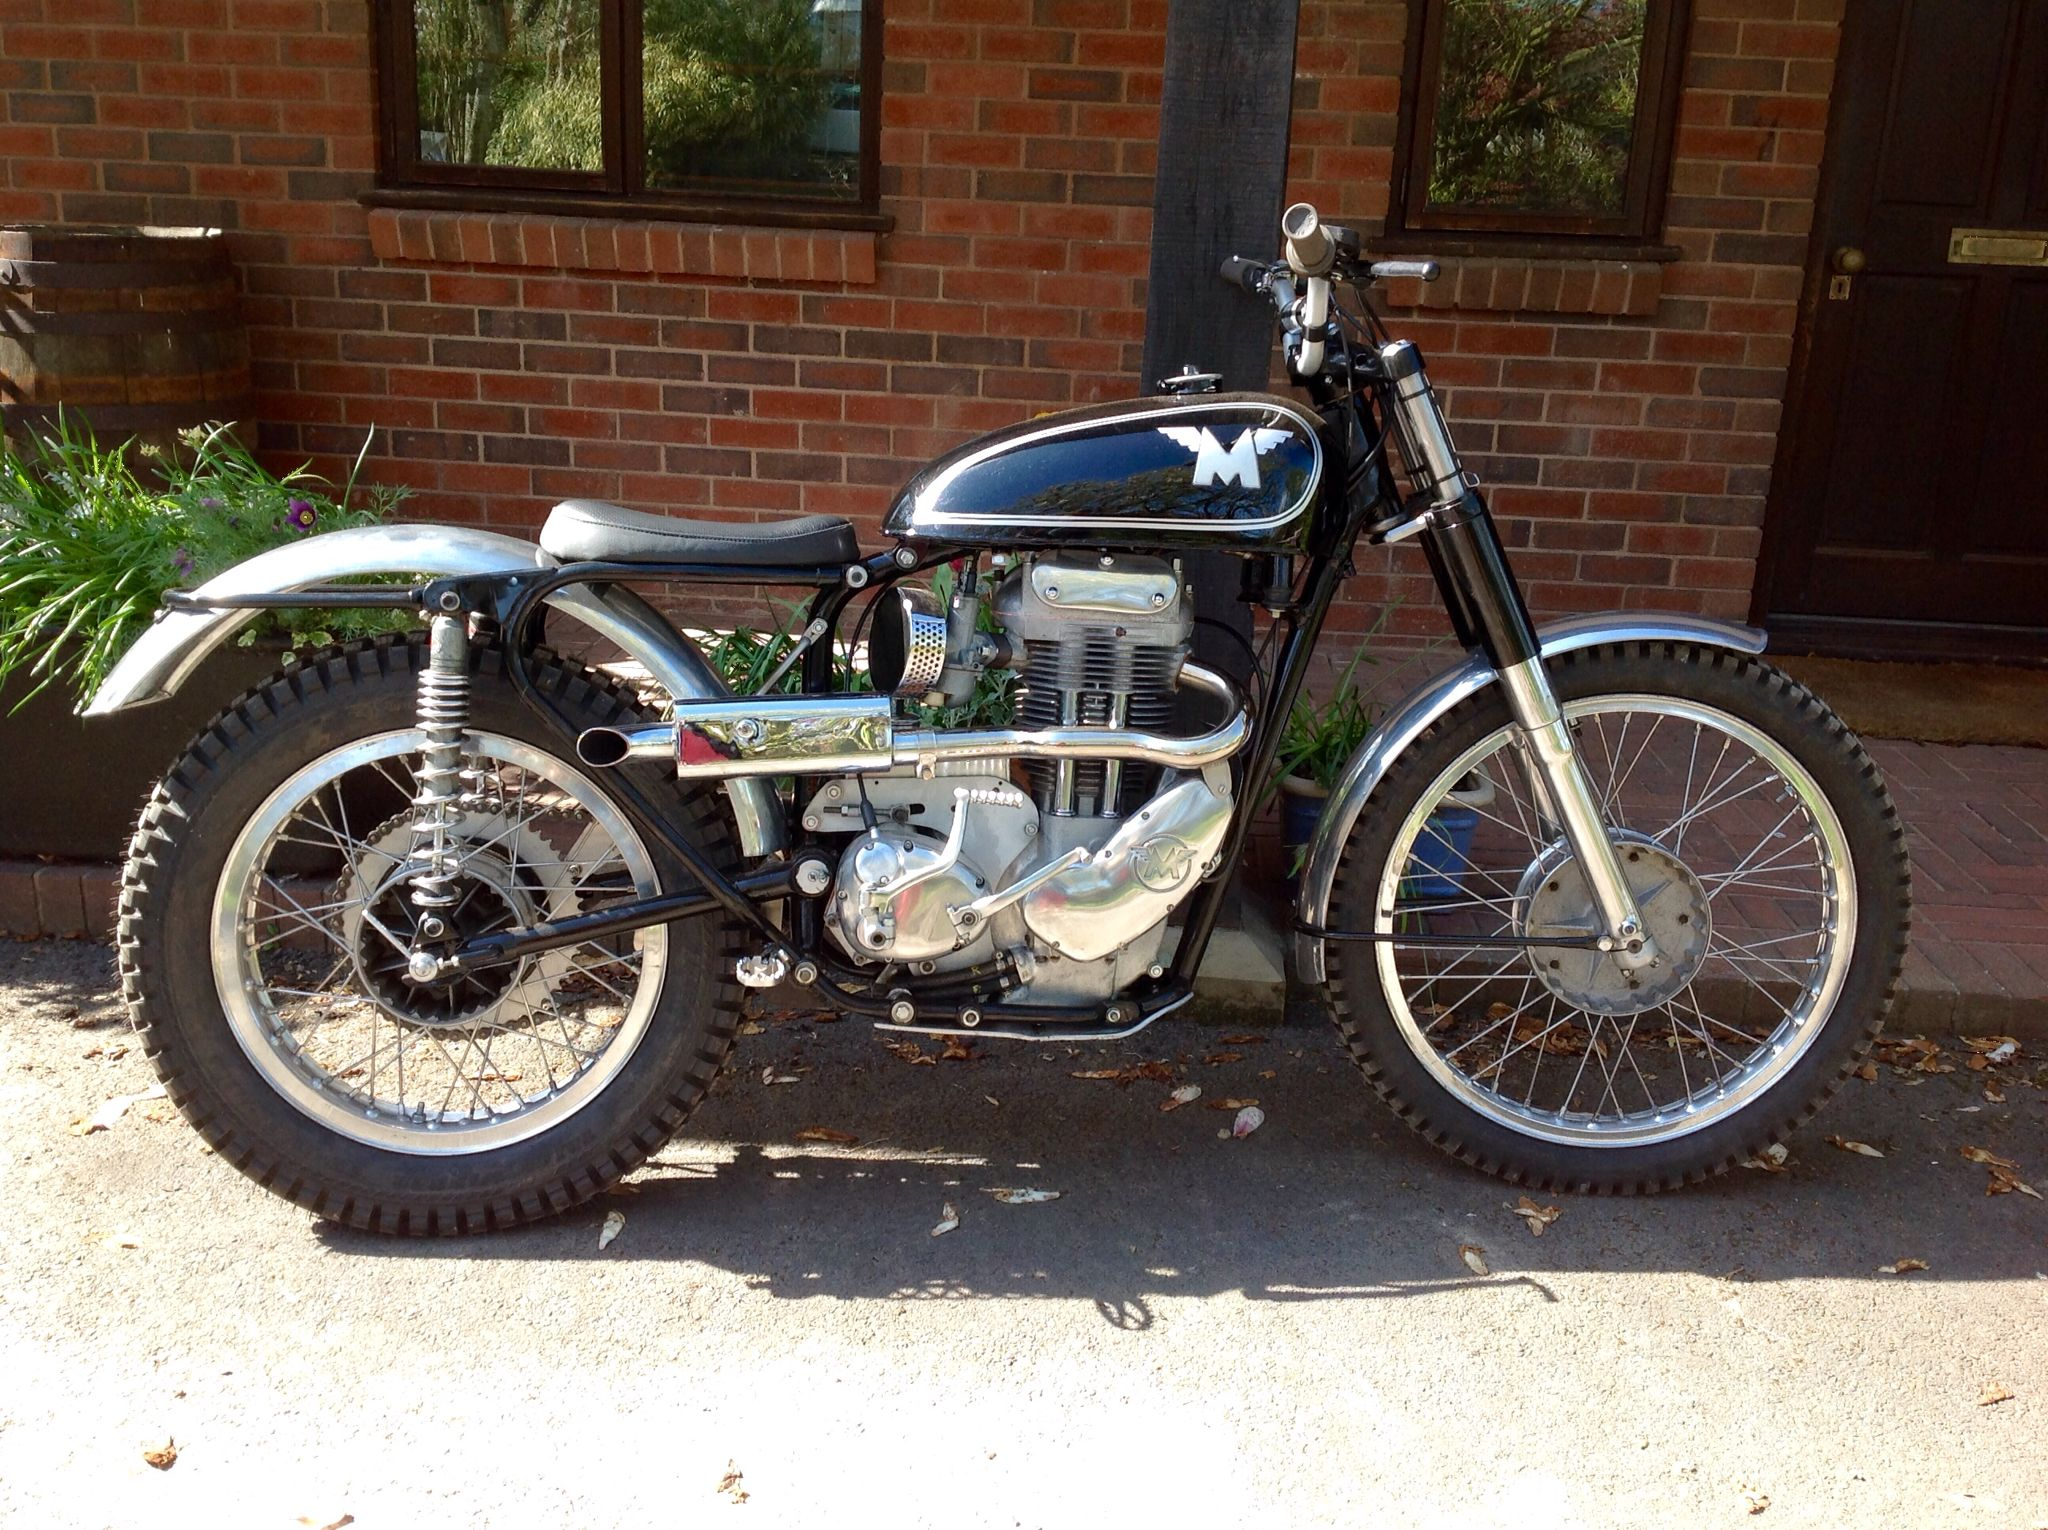 1957 Works Matchless Trials Bike Vintage Bikes Classic Motorcycles Trial Bike